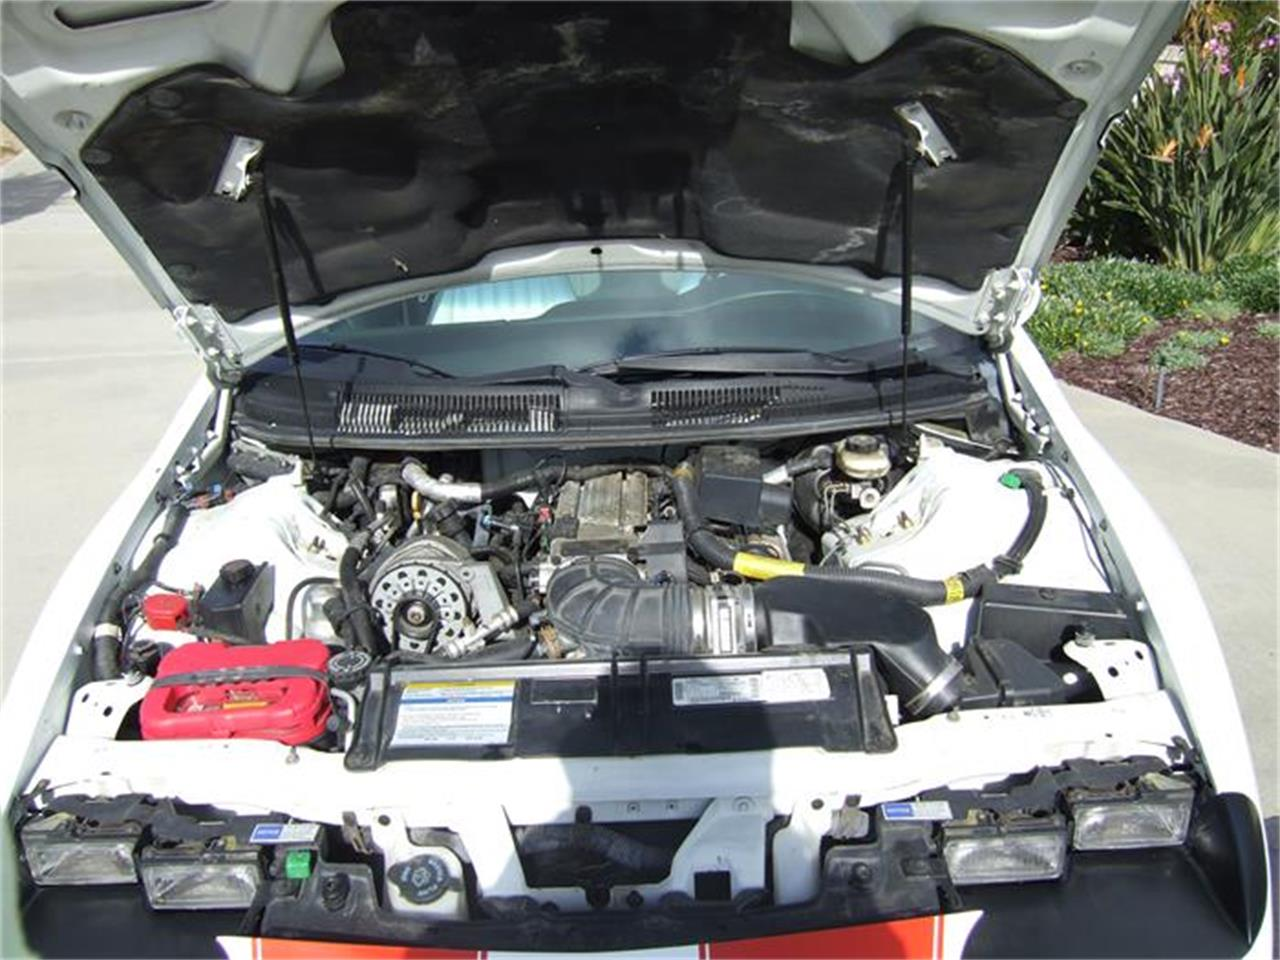 Large Picture of '97 Camaro Z28 located in California - $16,000.00 Offered by a Private Seller - B1LI